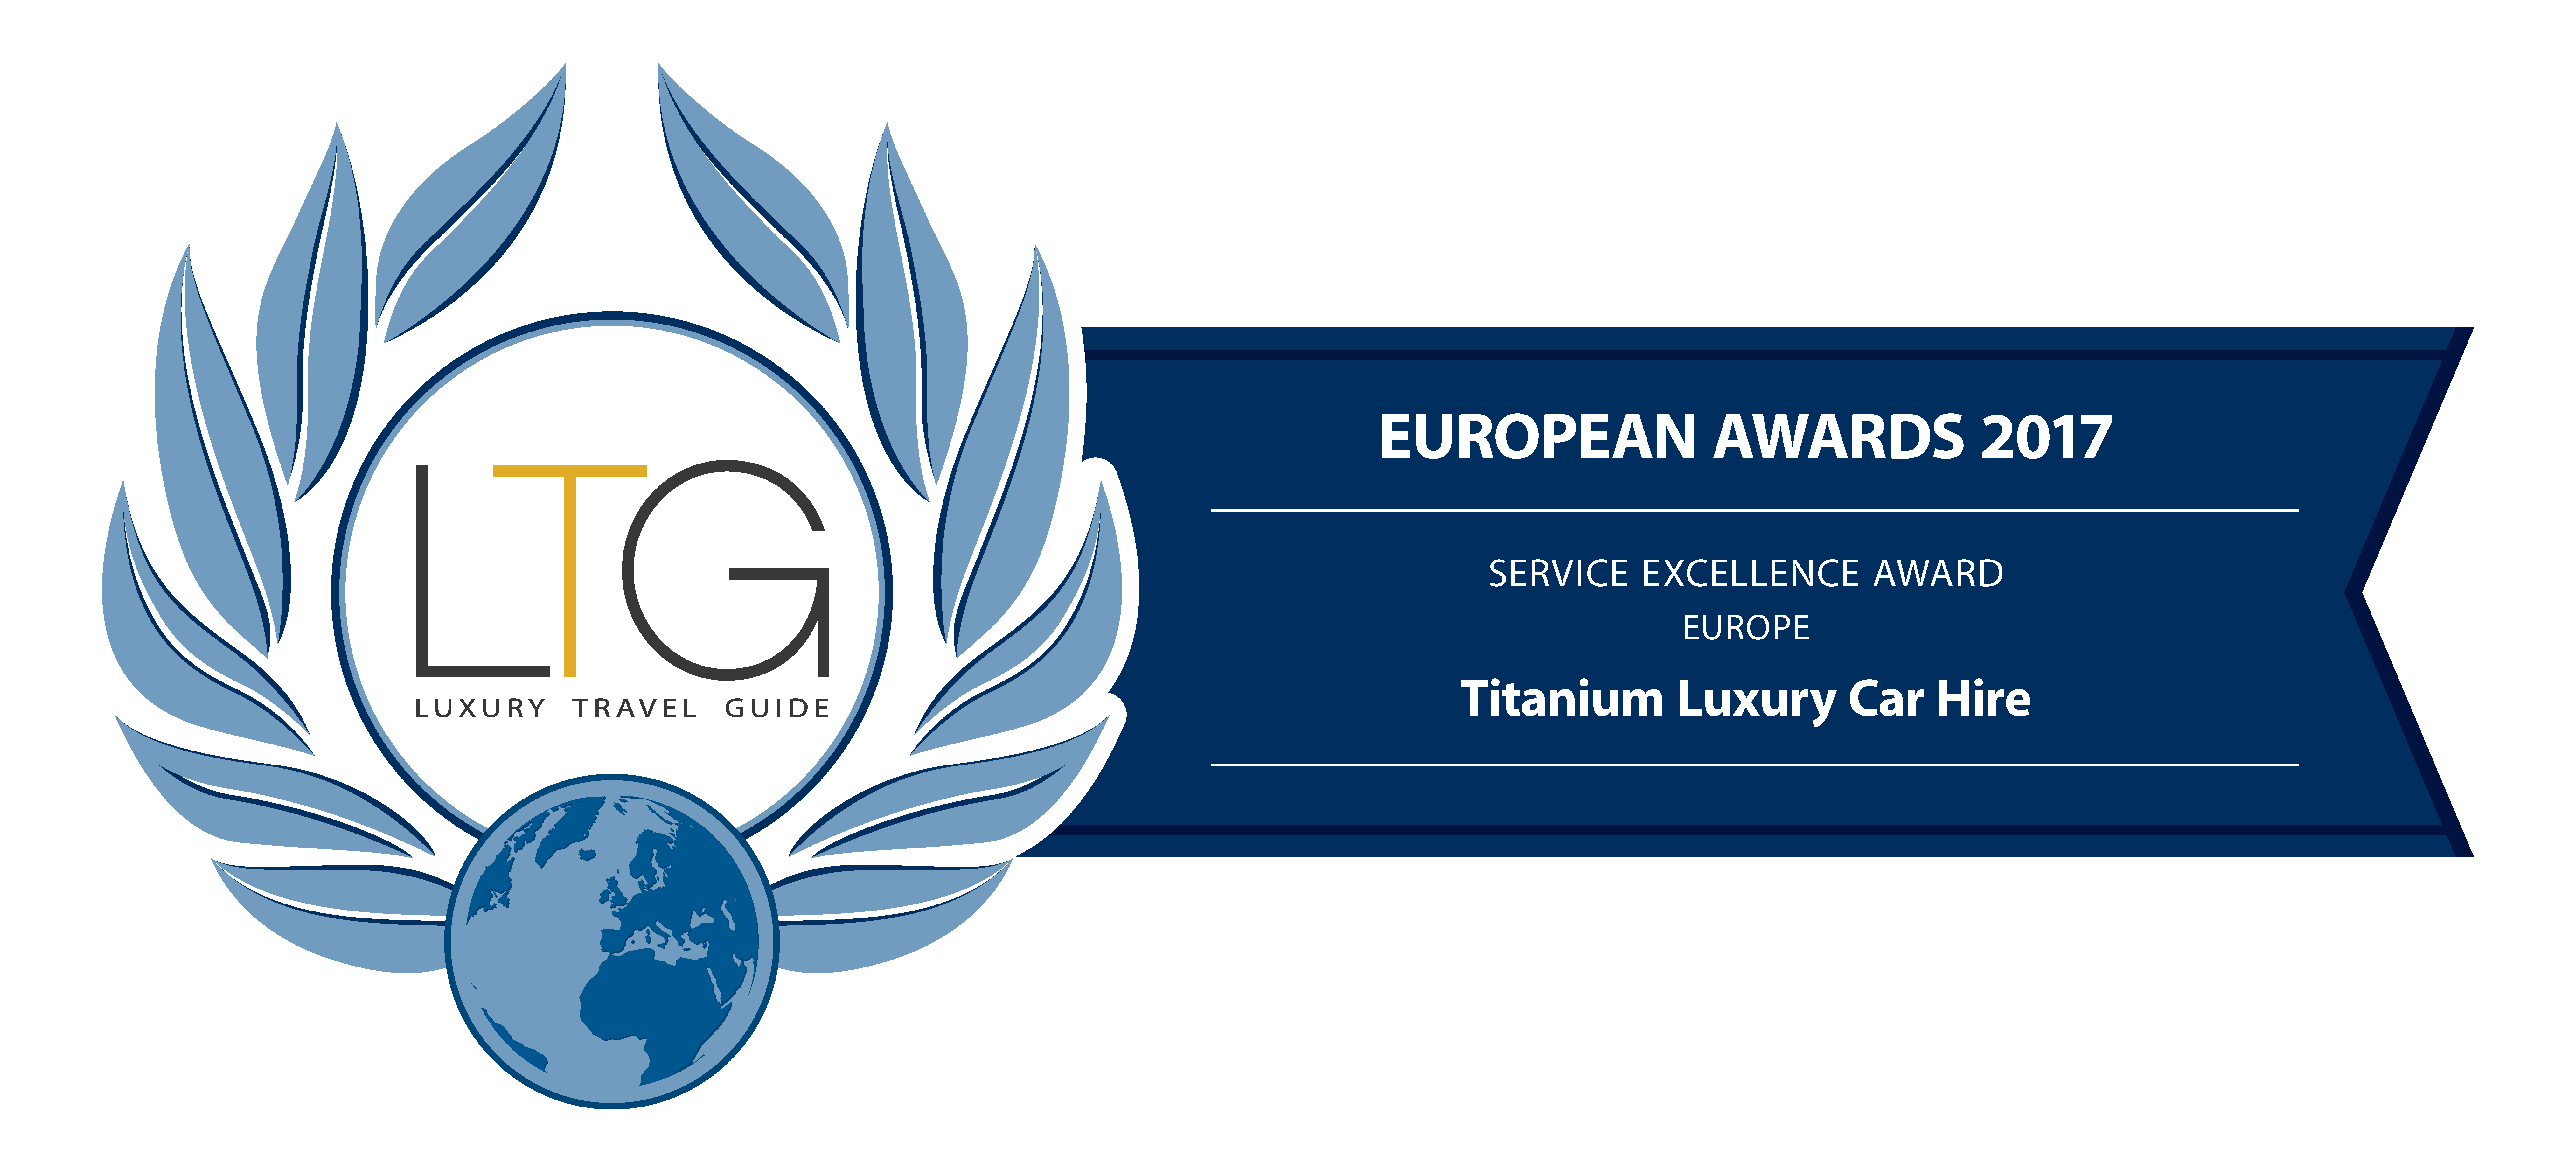 About Titanium Luxury Car Hire Europe